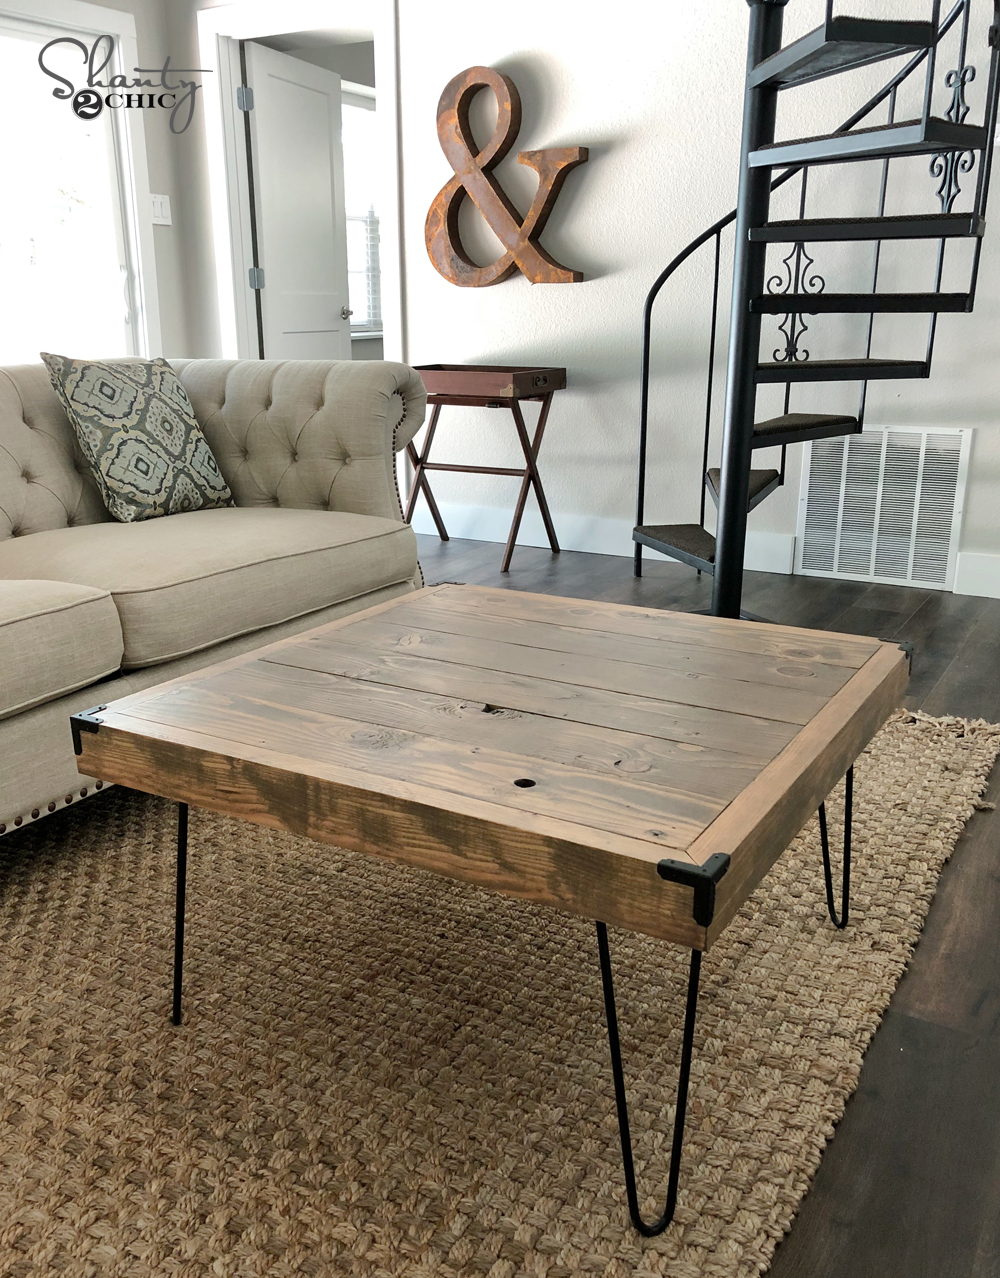 - DIY $50 Square Hairpin Leg Coffee Table - Shanty 2 Chic